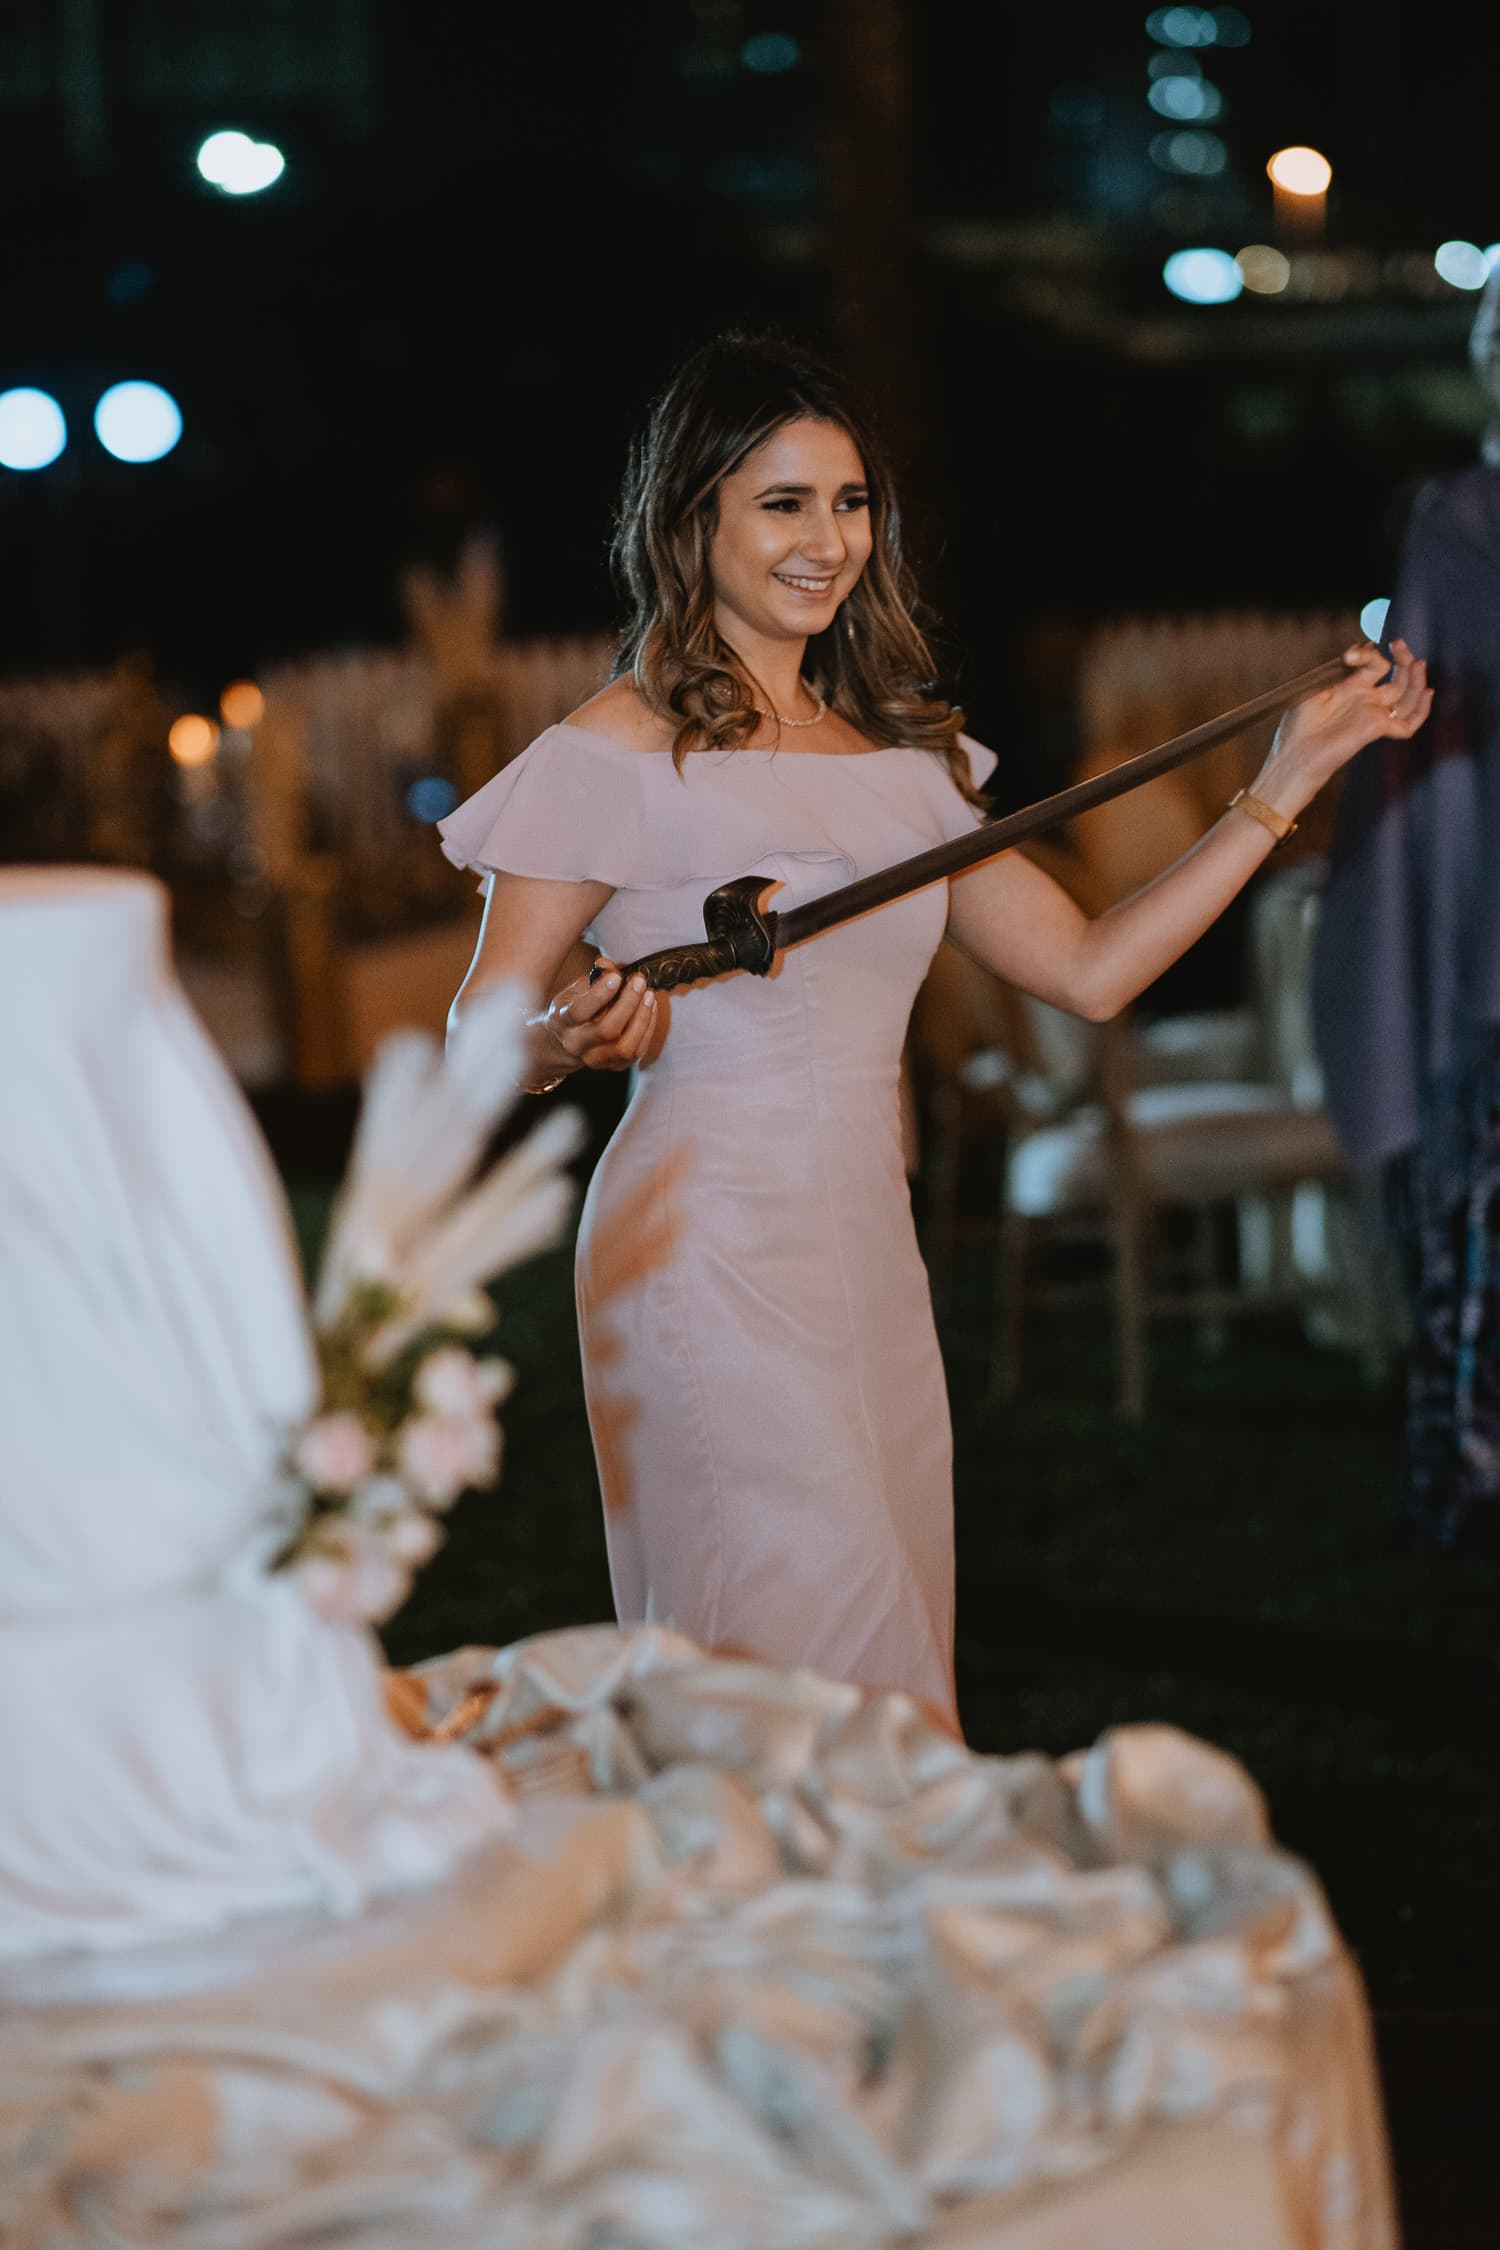 Outdoor Wedding Reception Knife Dance